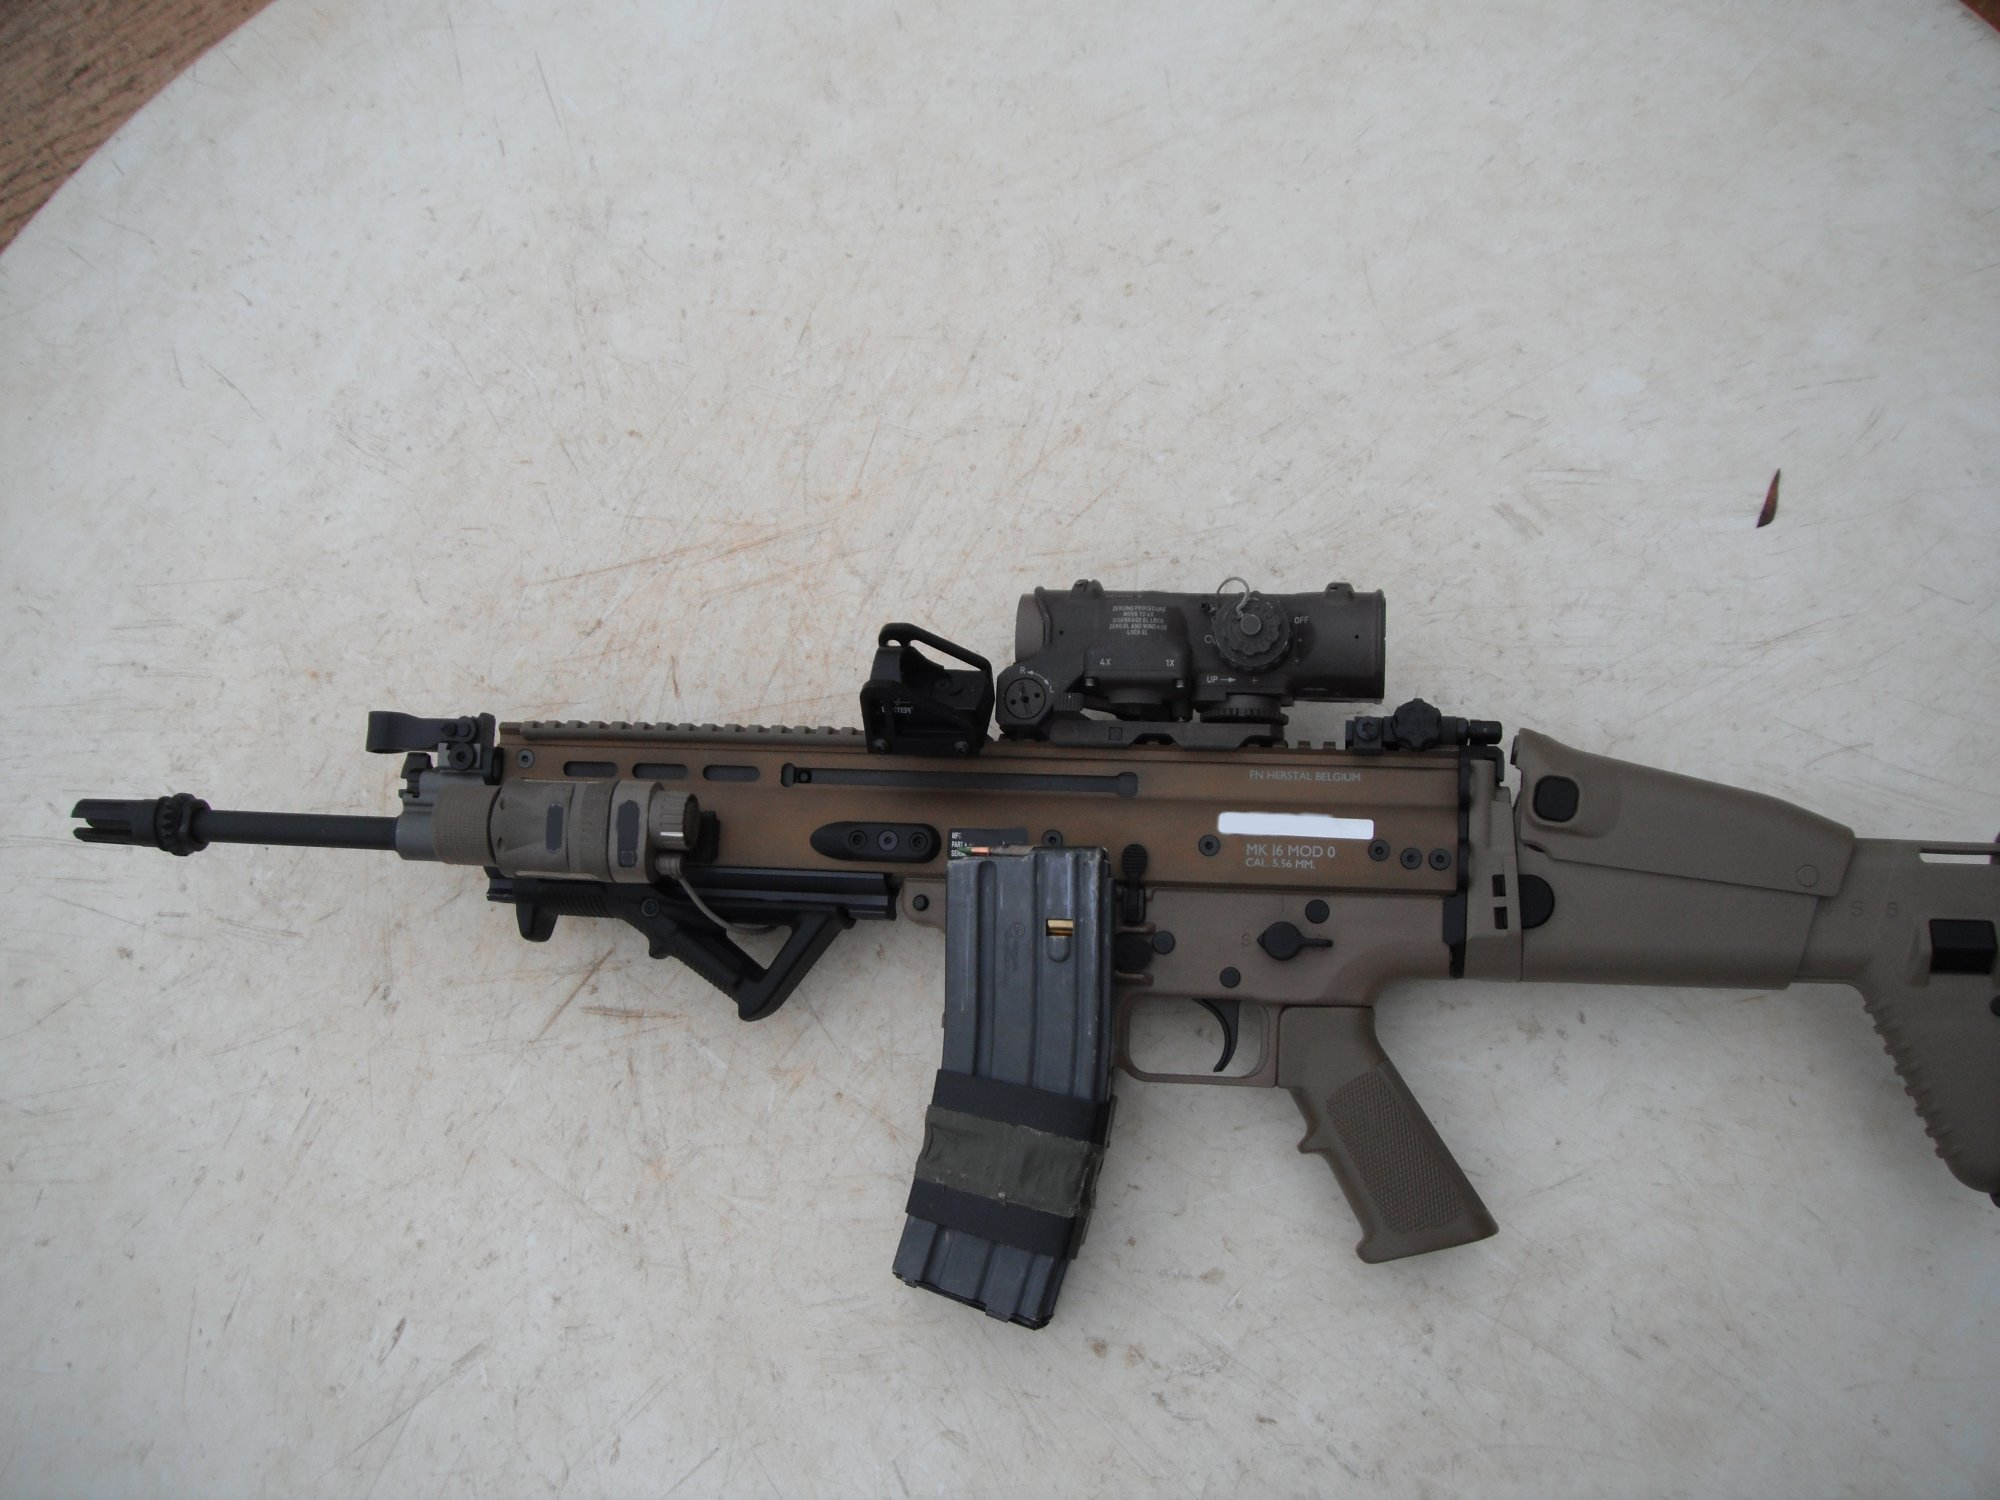 FN SCAR MK16 SCAR L Elcan SpecterDR and Matt Burkett Offset Mount for Docter Red Dight Sight Combat Optics 1 Small <!  :en  >FN SCAR Weapons Program Status Update, and Special Operations Forces (SOF) Mk 16 SCAR L 5.56mm NATO Assault Rifle/Carbine/SBR Combat Optics and Tactical Accessories Setup (Photo!)<!  :  >